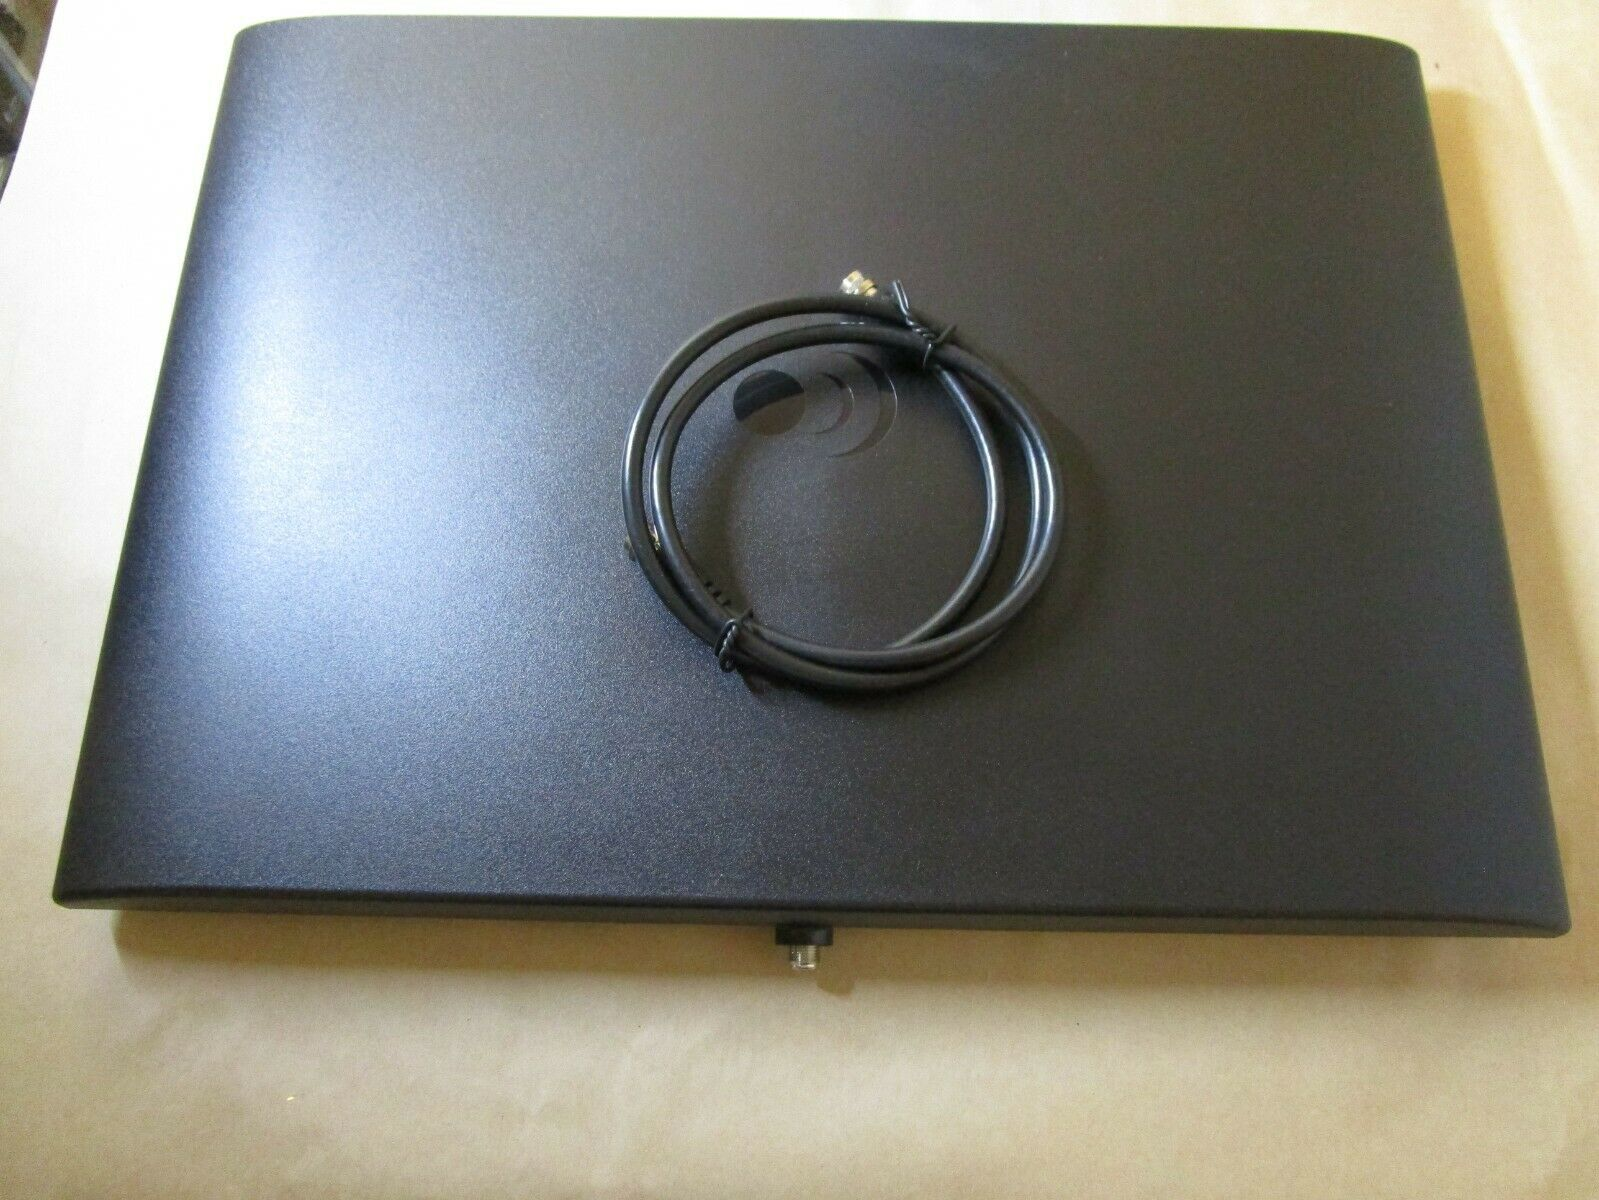 Antennas Direct ClearStream FUSION Amplified Indoor/Outdoor TV Antenna. Available Now for 15.00